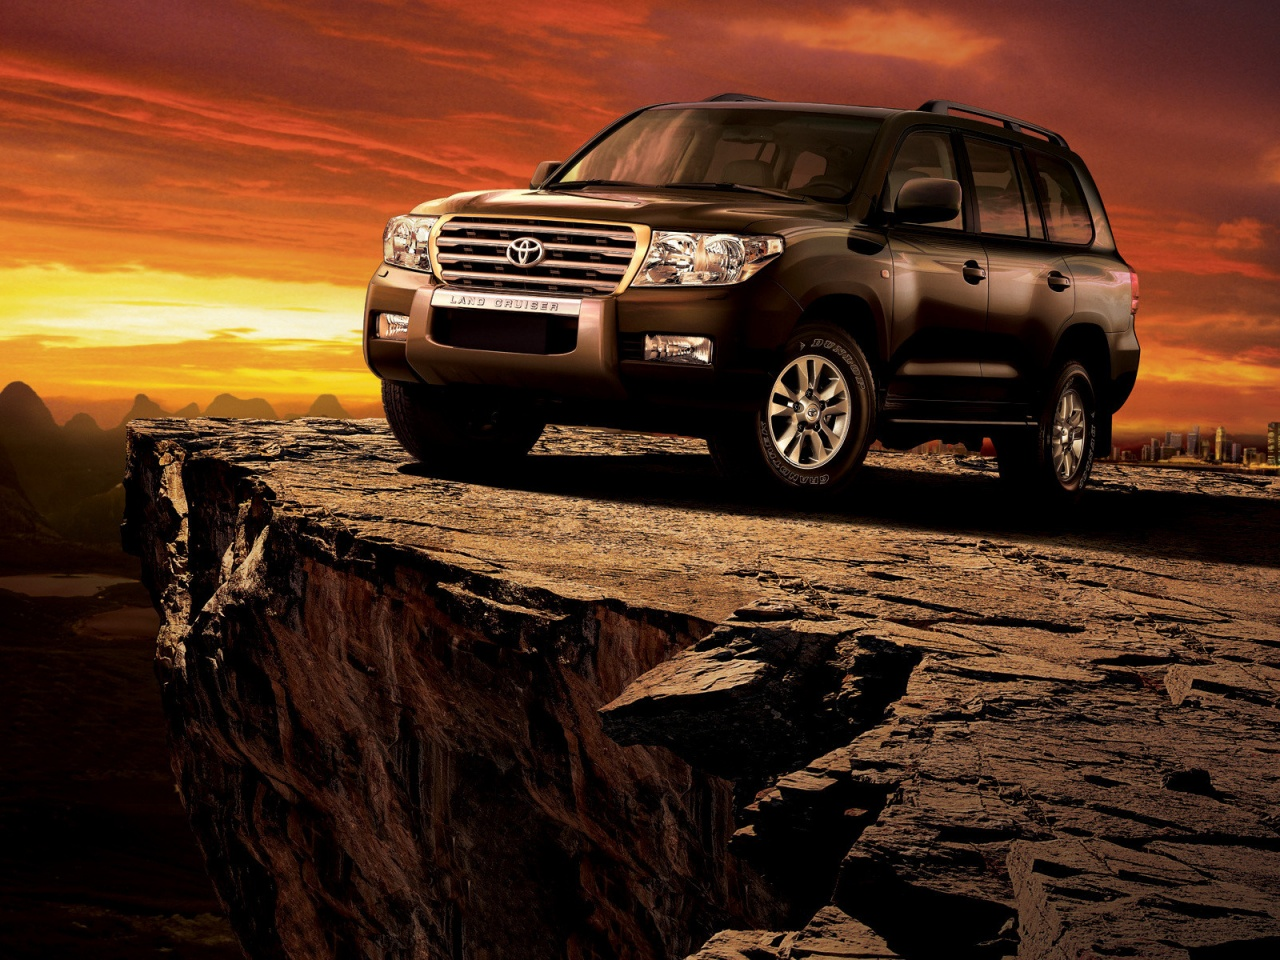 Toyota Land Cruiser at Sunset